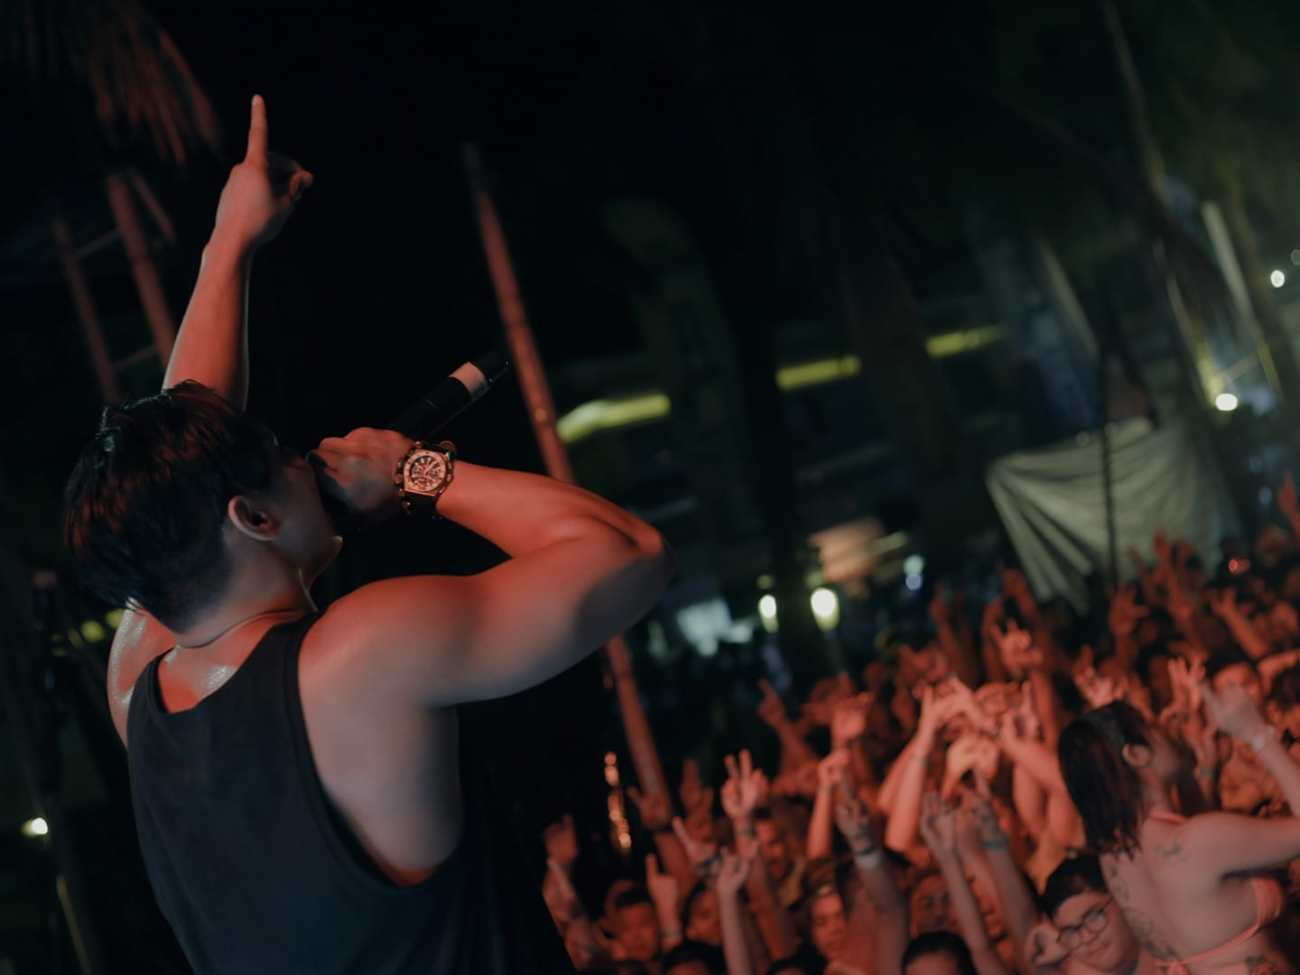 Laboracay Victor Pring chanting at the crowd